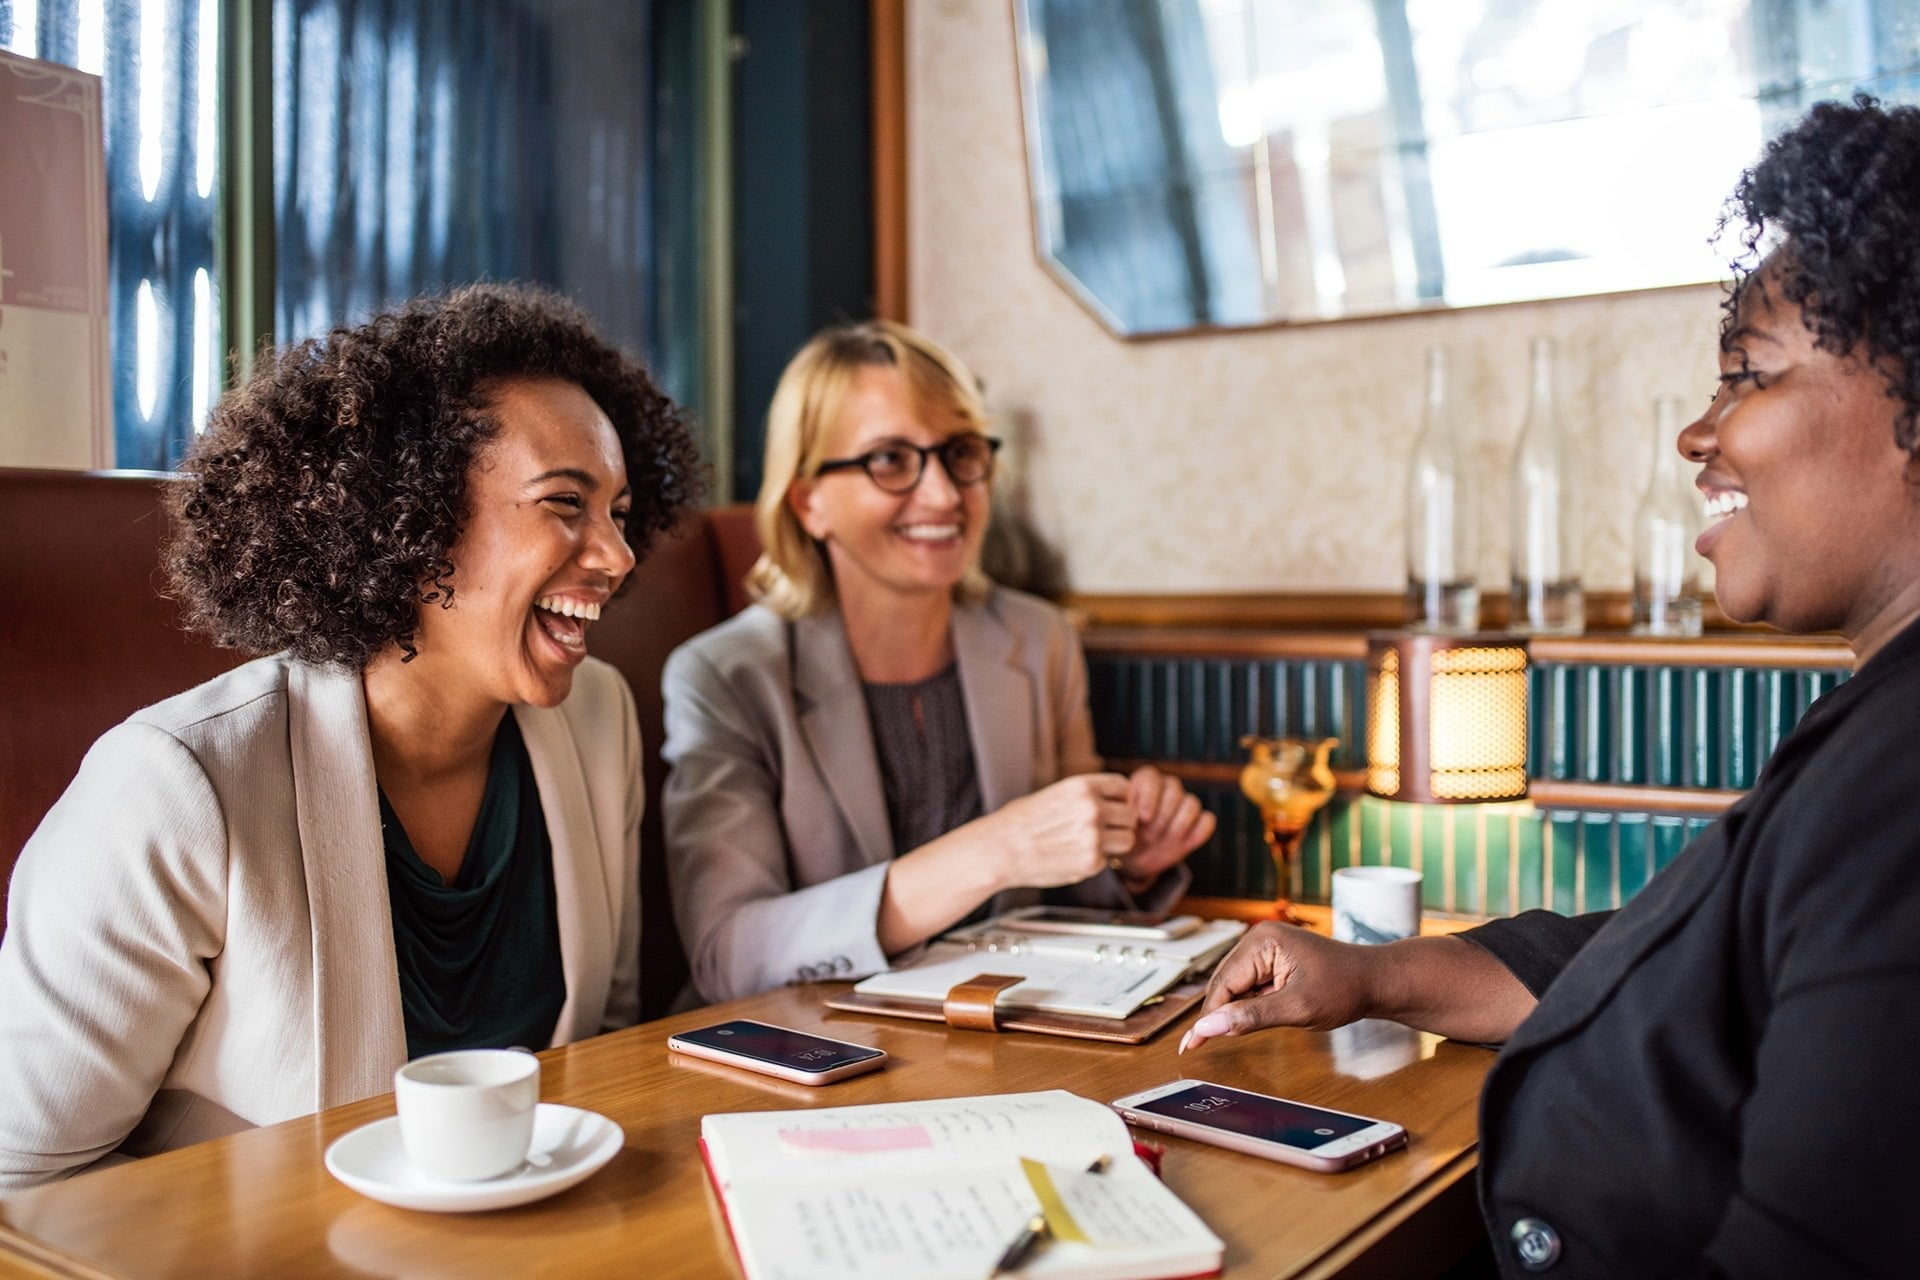 three women sitting at a restaurant table conversing and laughing